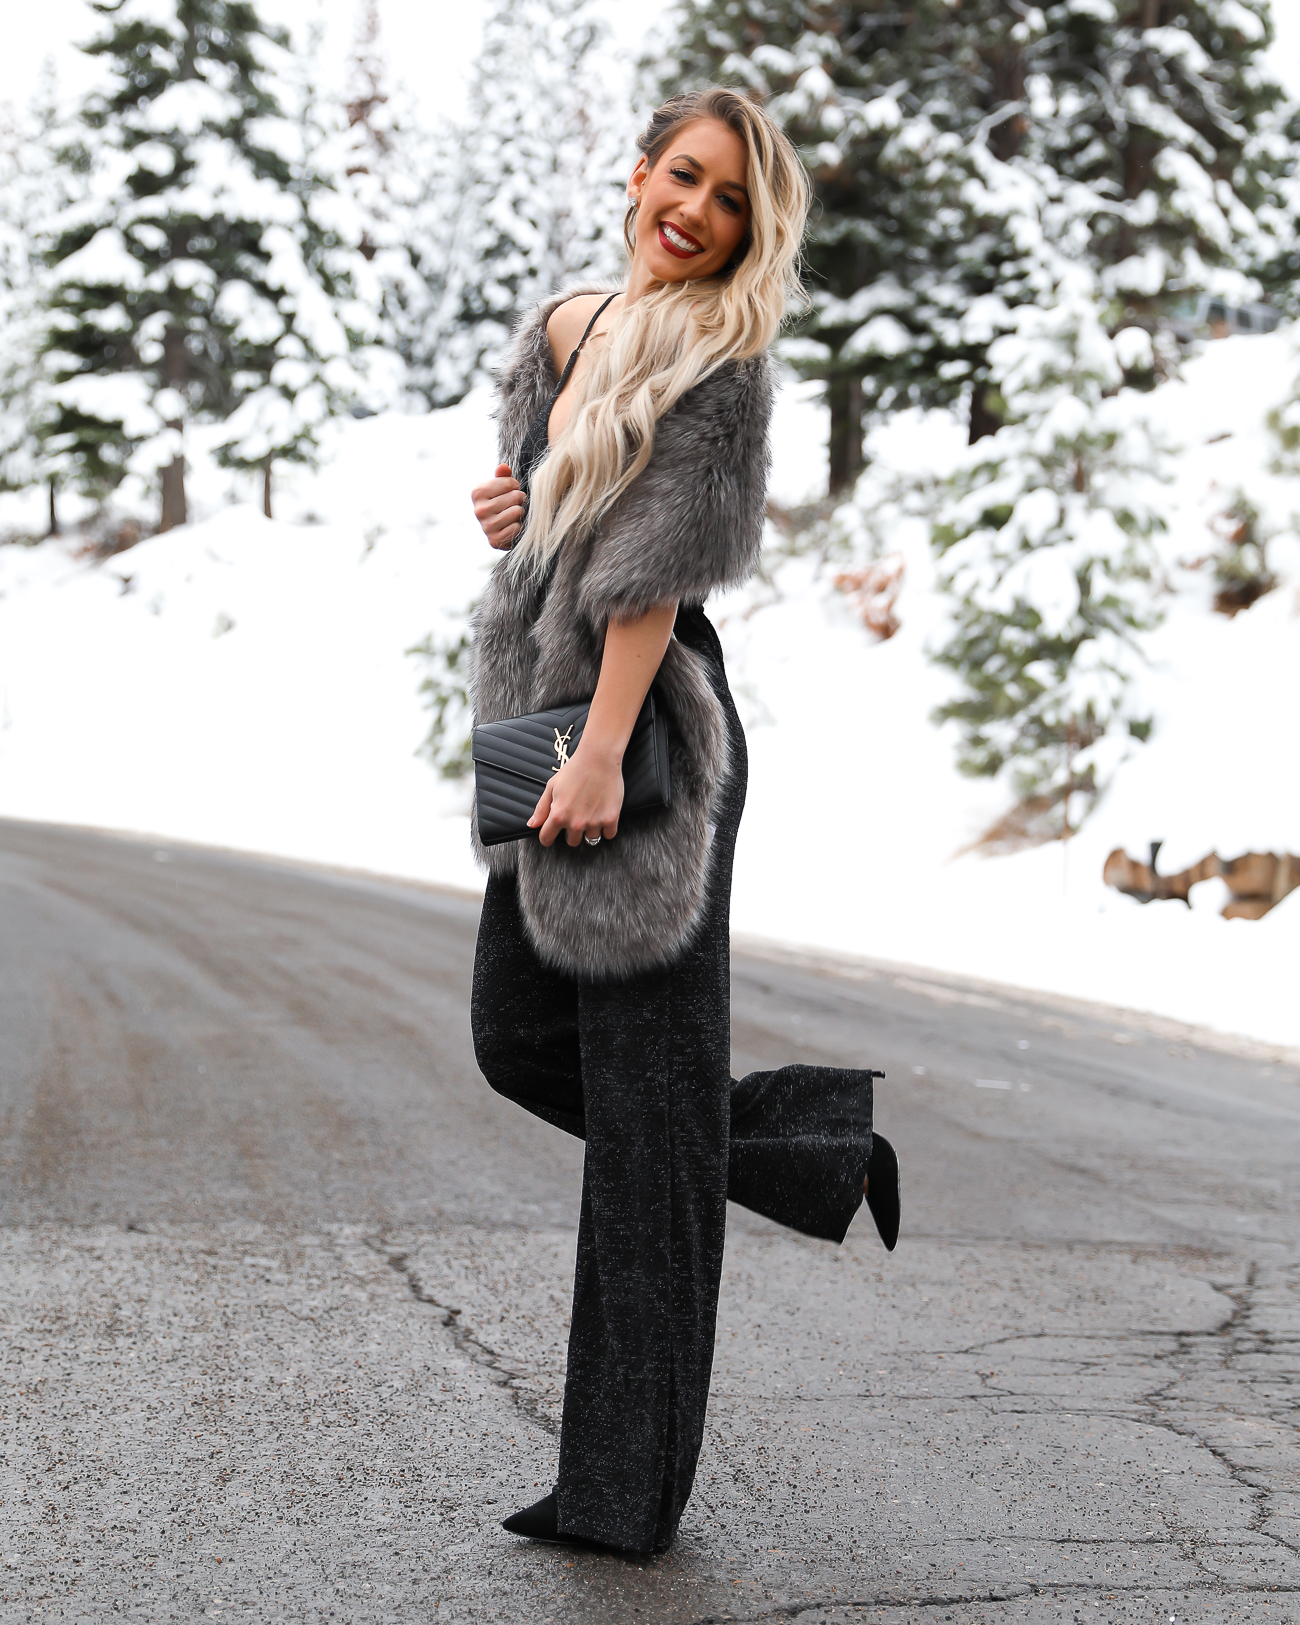 Nordstrom Black Christmas Holiday Sparkle Jumpsuit Faux Fur Scarf wrap Black YSL monogram wallet on a chain Lake Tahoe Winter Outfit Laura Beverlin -5